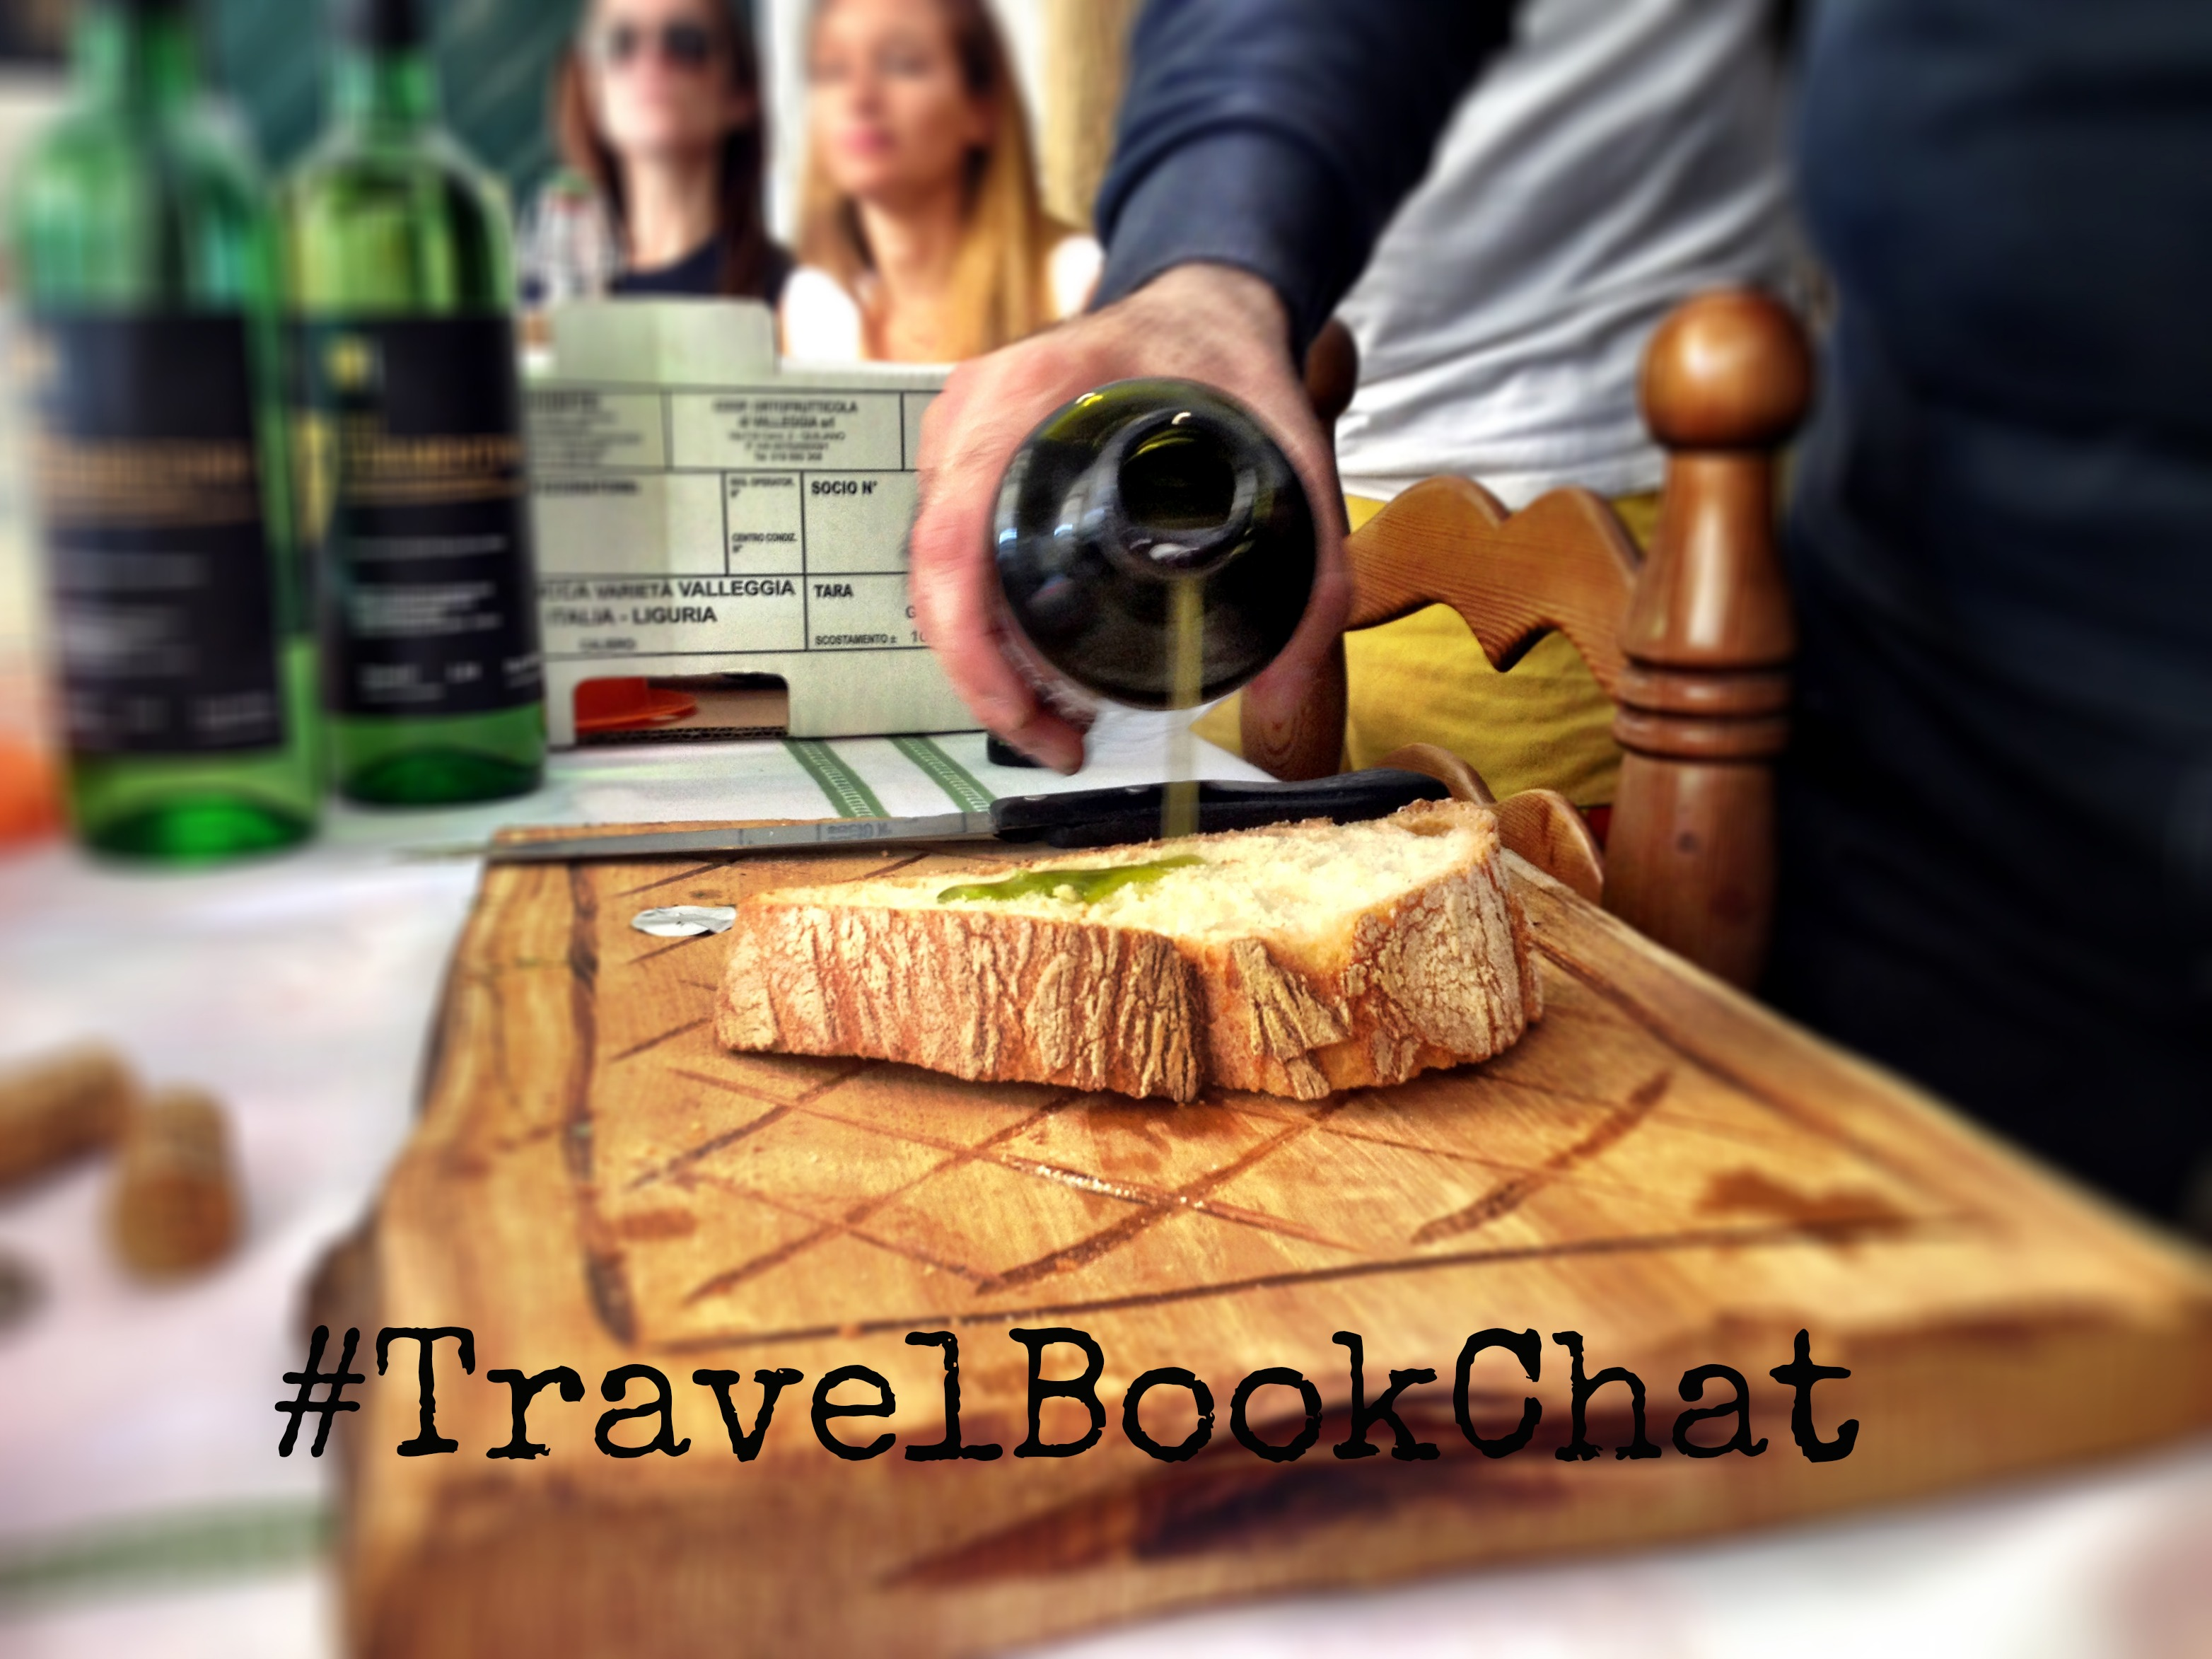 travelbookchat food 2